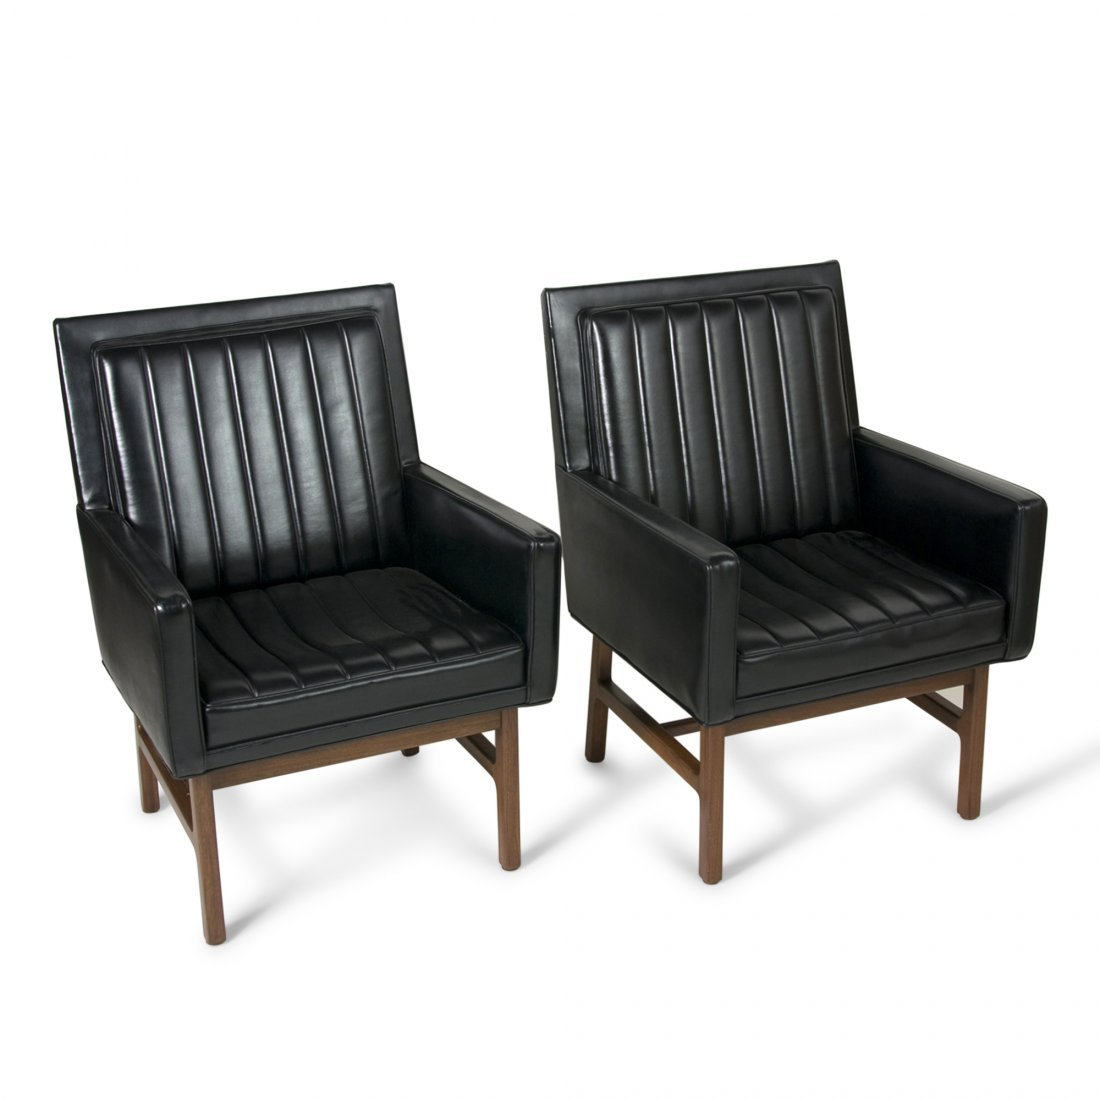 Black Armchairs by Milo Baughman (1st pair)